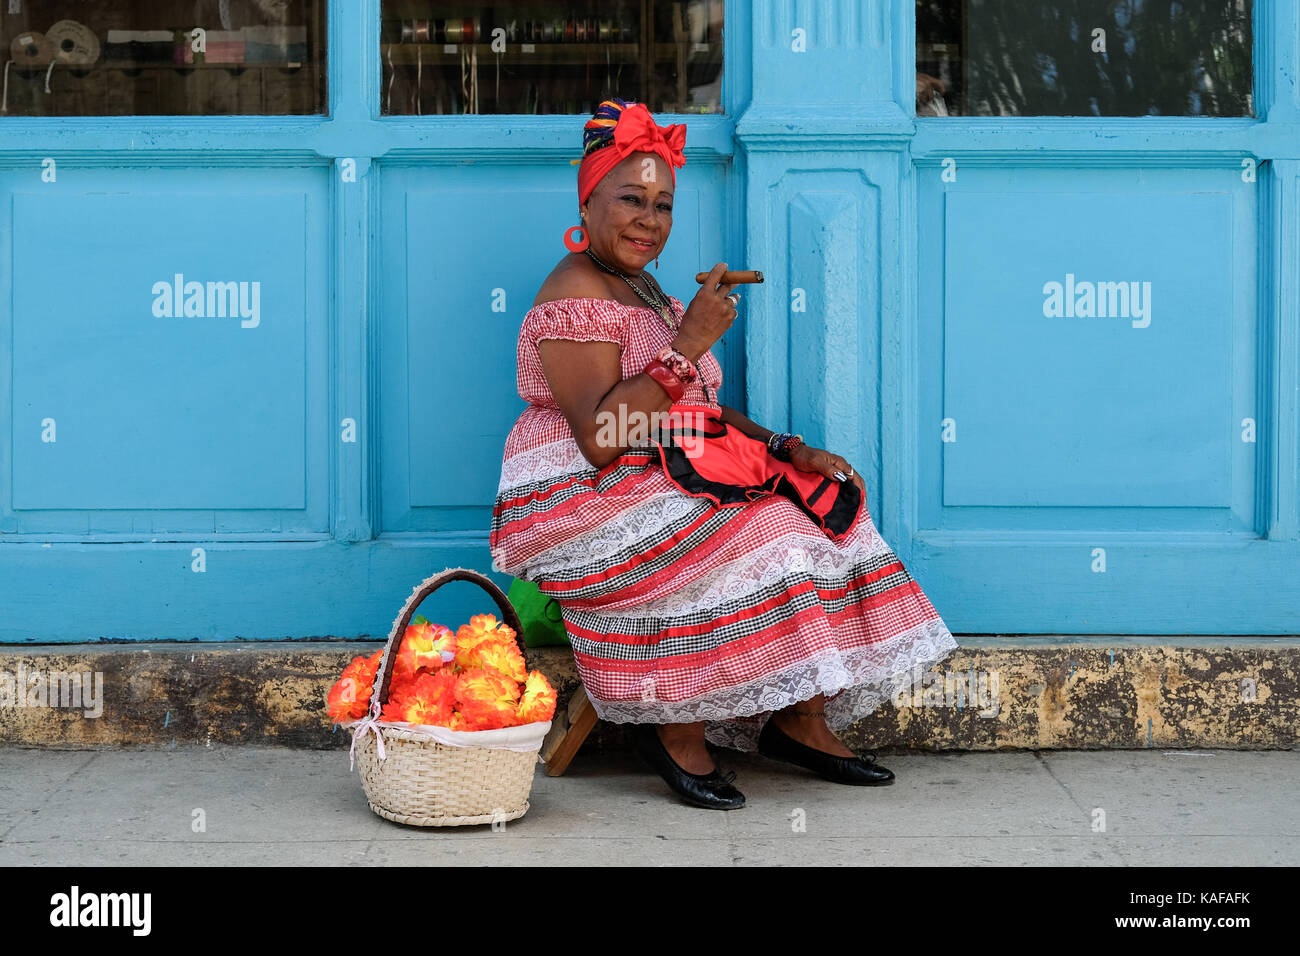 A colourfully dressed Cuban woman in traditional clothing sits on the streets of Habana Vieja in Havana, Cuba. - Stock Image